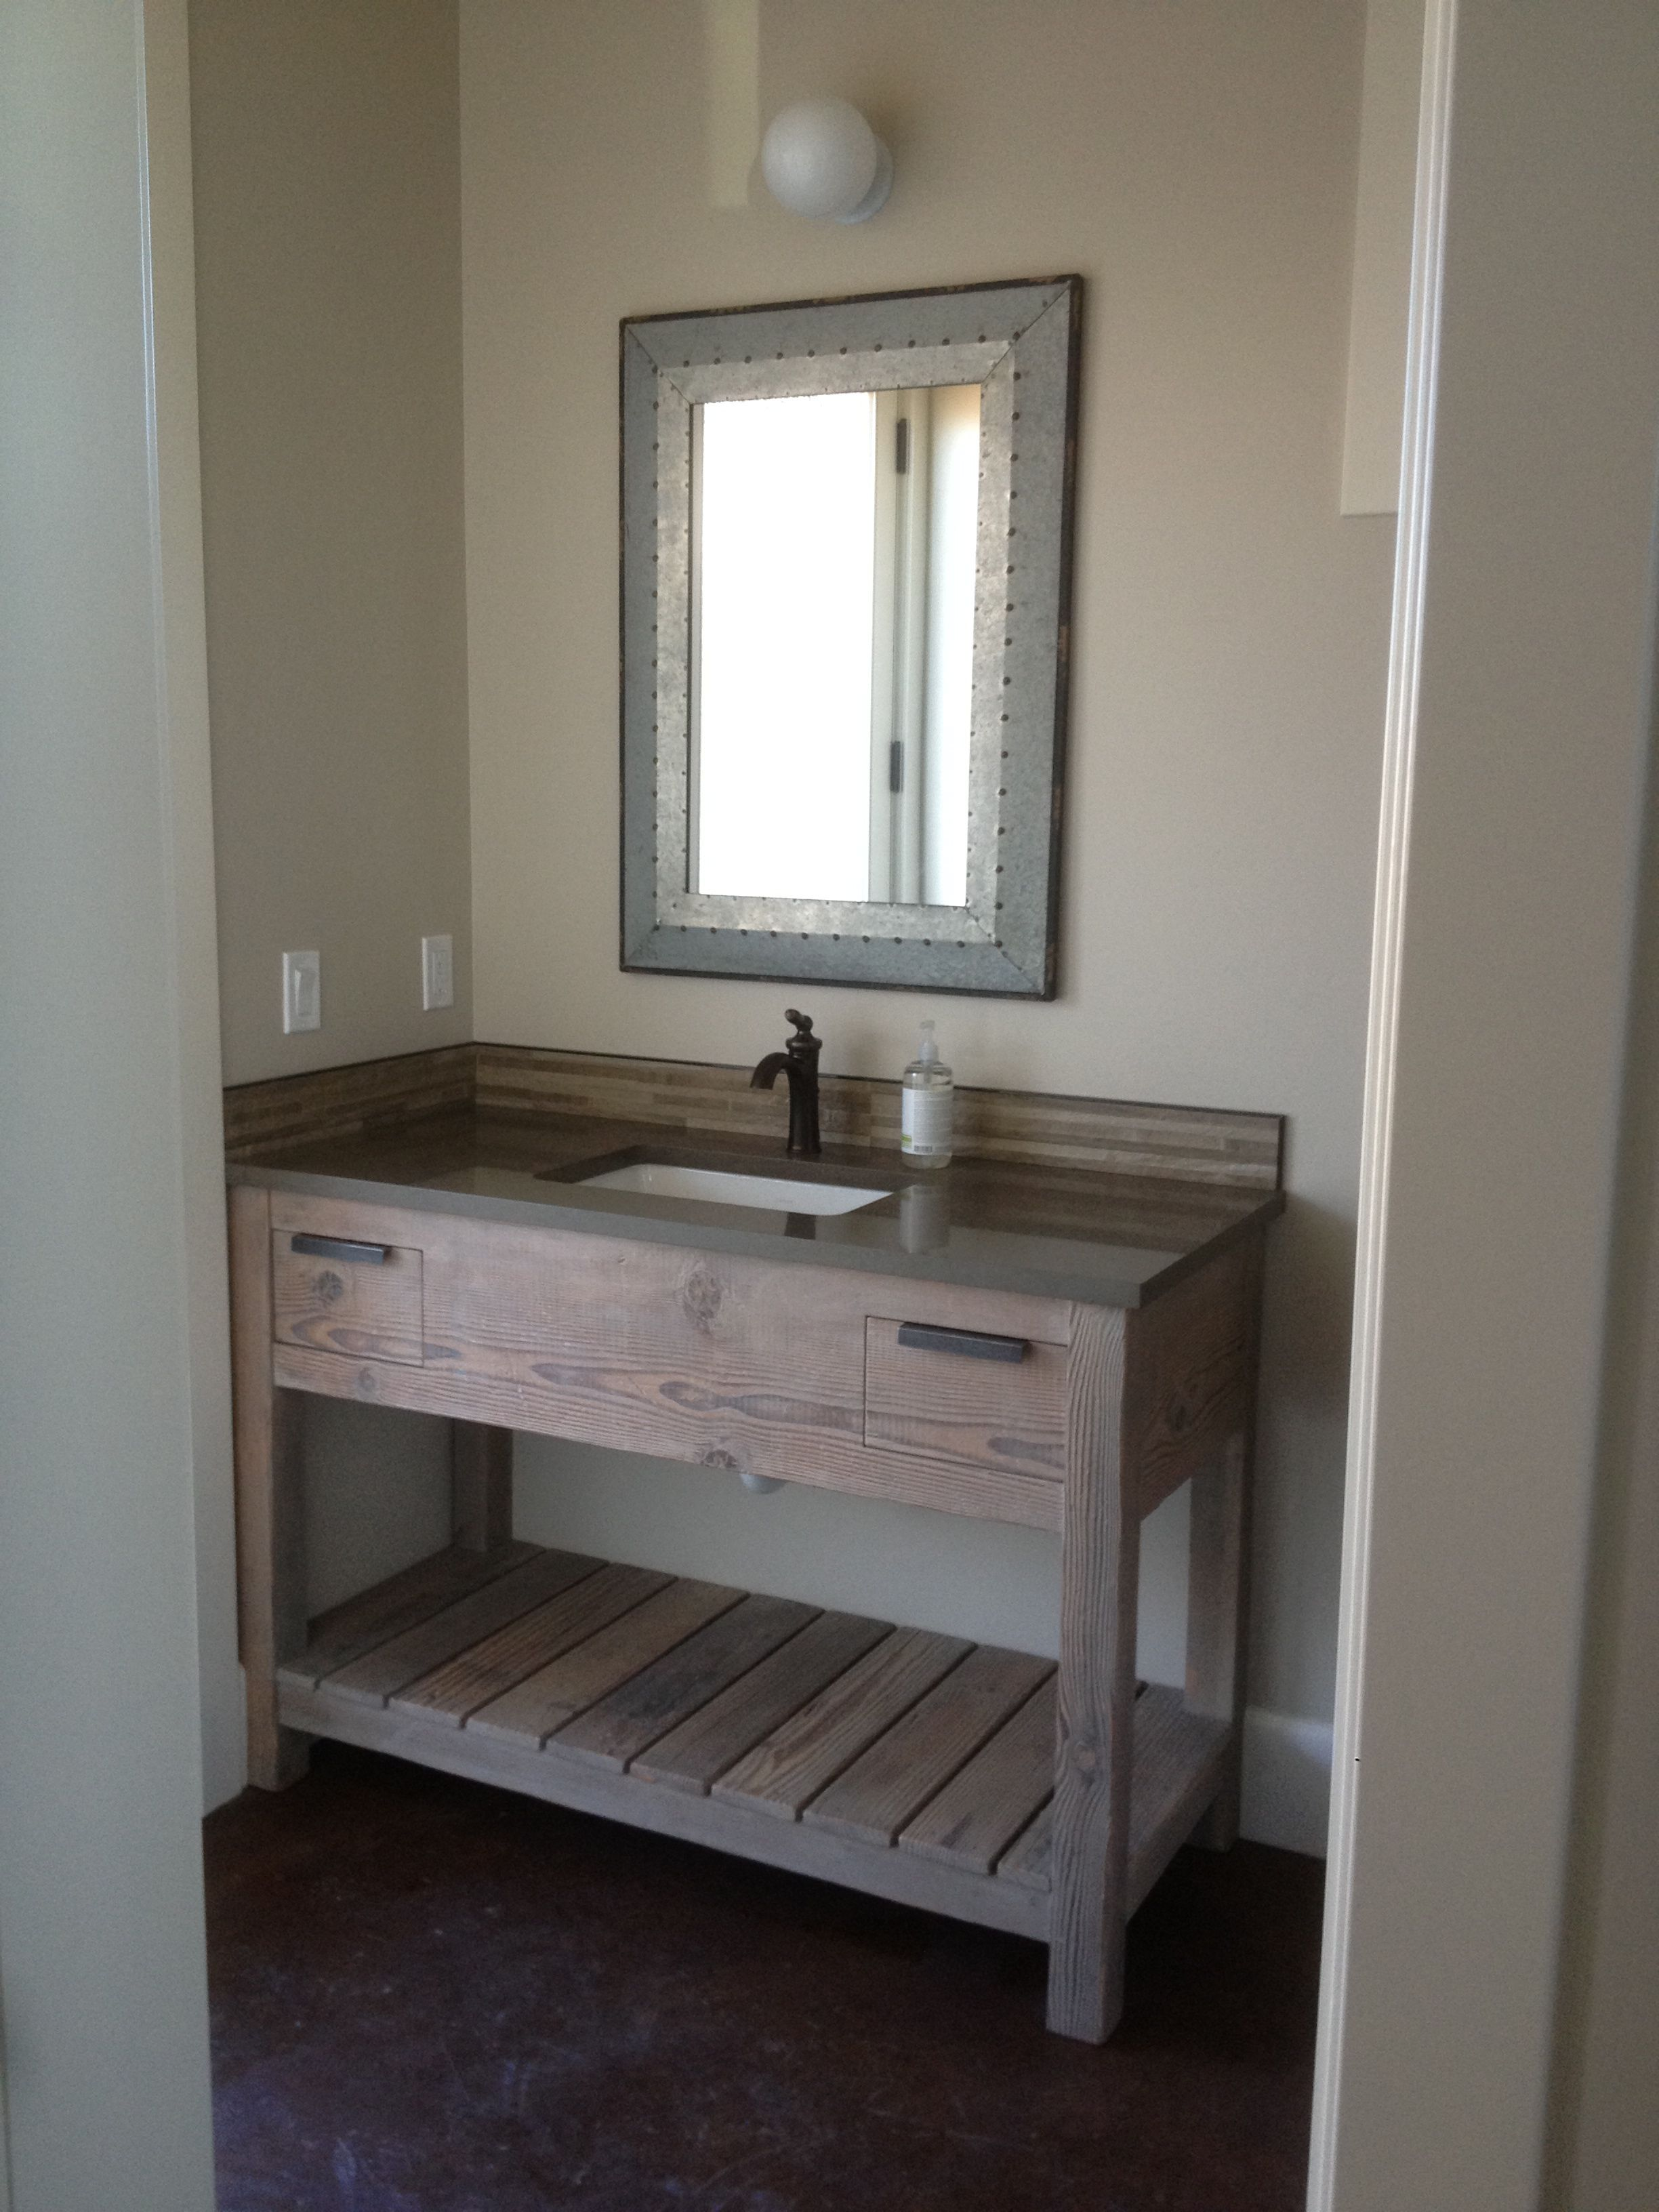 ideas vanities of free peachy lighting style attractive vanity farmhouse modern house bathroom a design functionality amazing home rustic